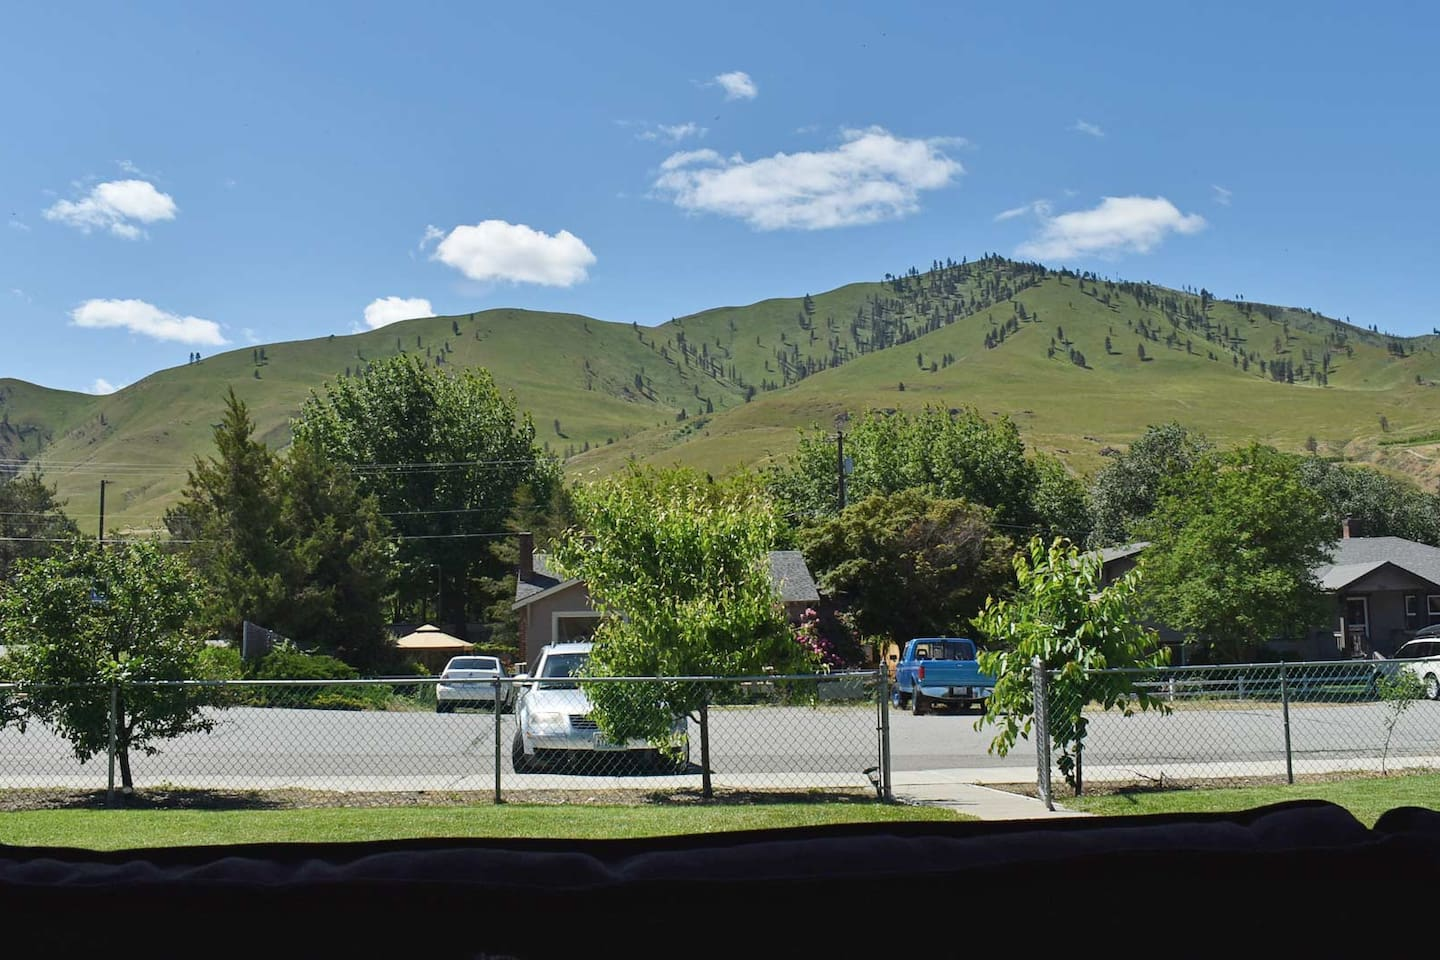 Large, grassy fenced yard with easy access to Riverwalk Park - great walking path and two blocks away from downtown Chelan